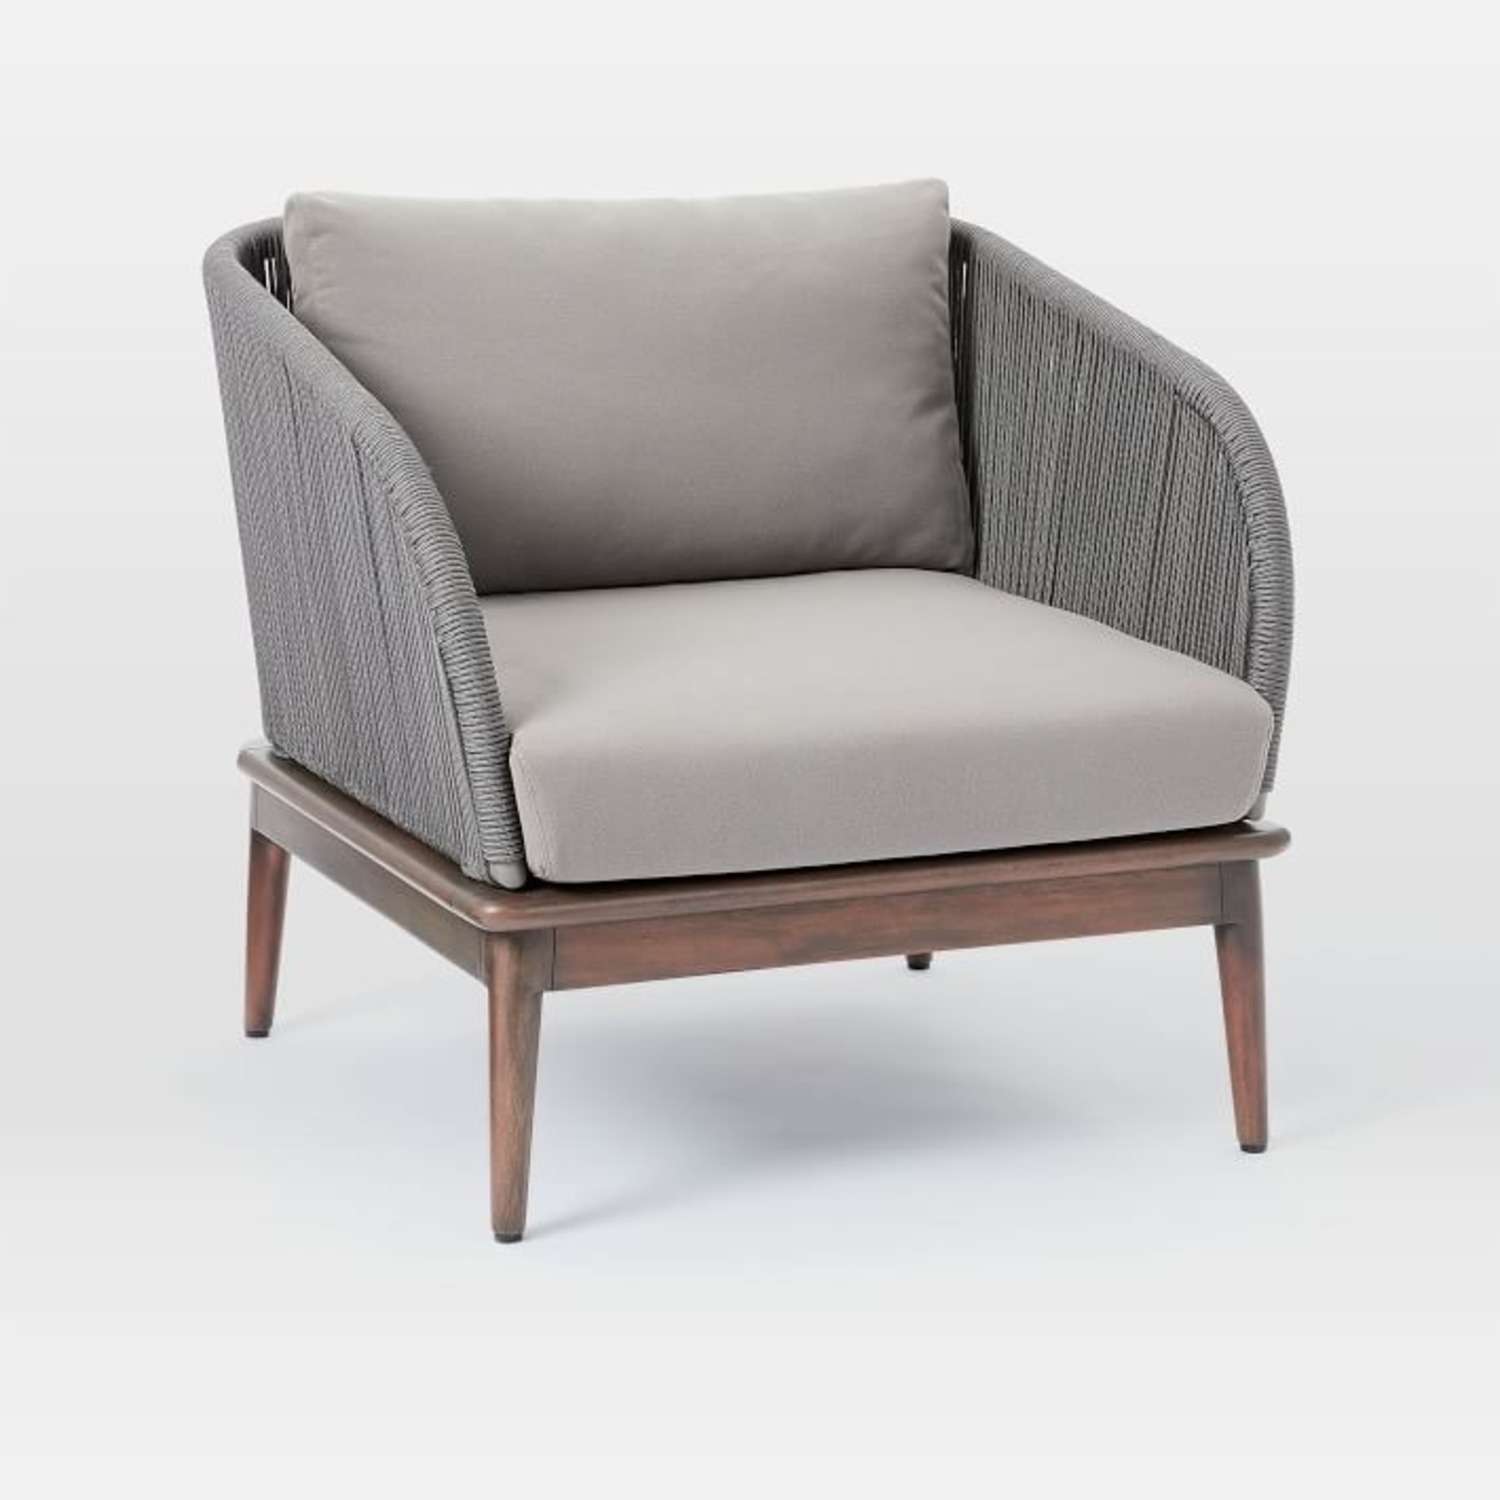 West Elm Corded Weave Outdoor Lounge Chair - image-2